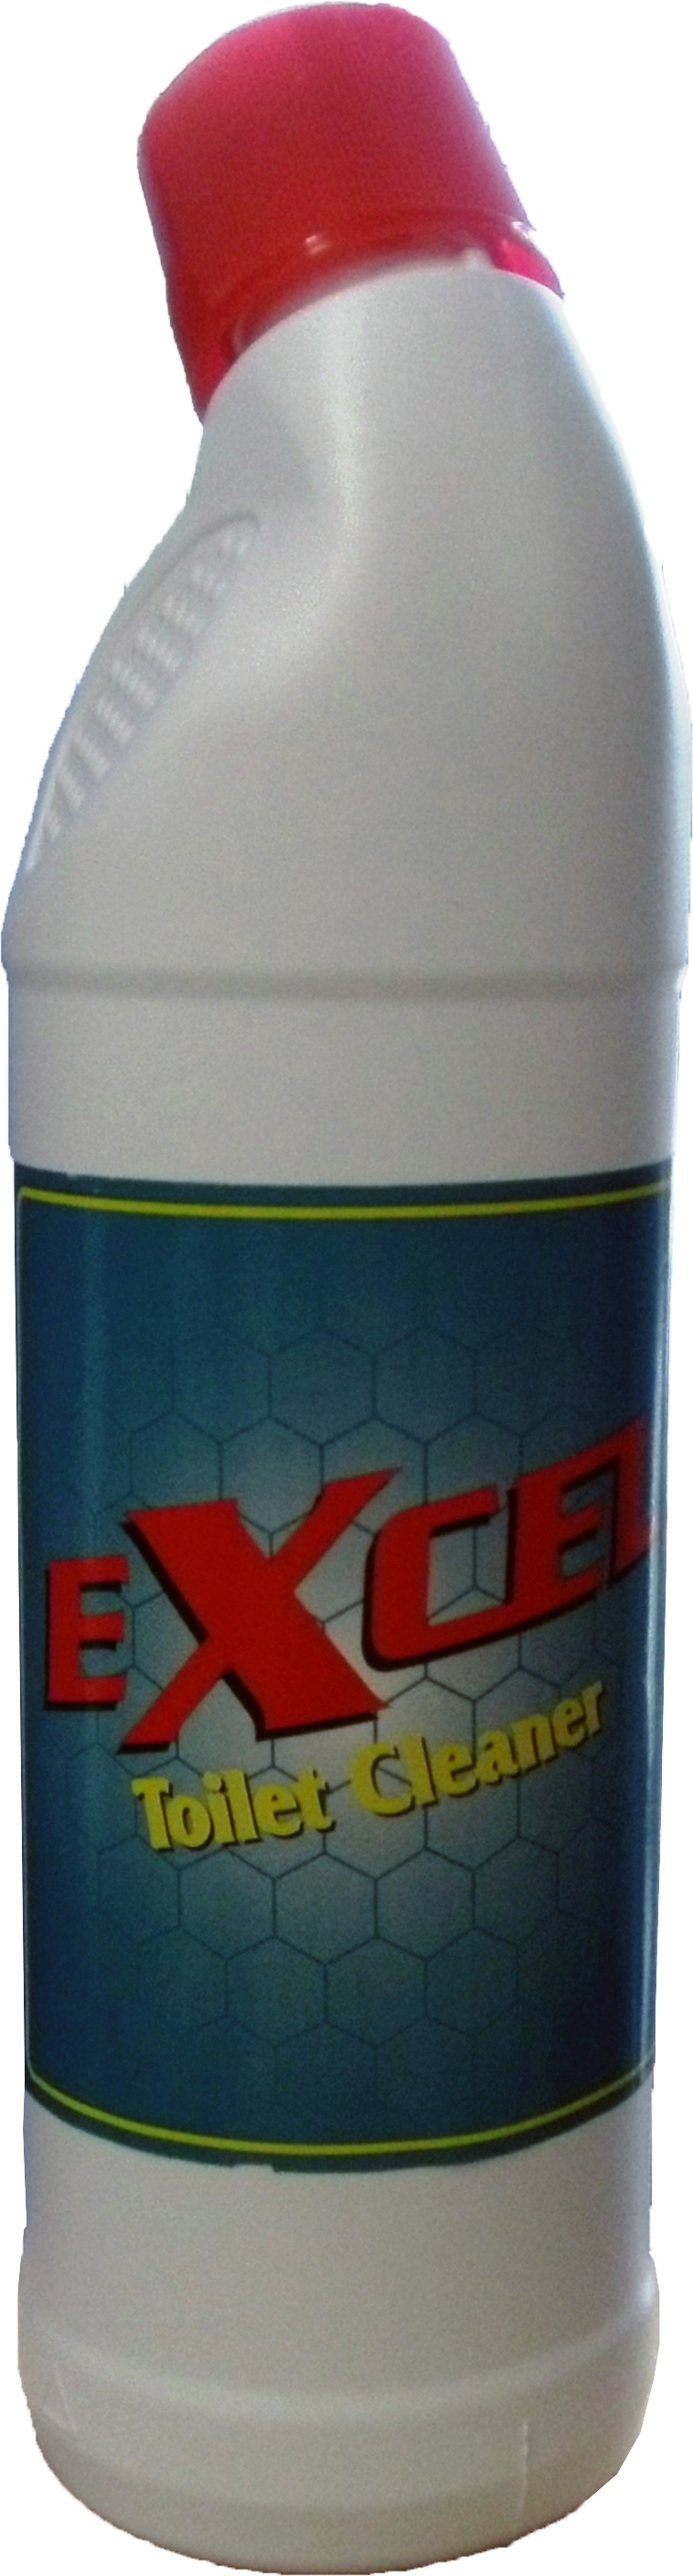 Excel Strong Toilet Cleaner - 12 x 750ml